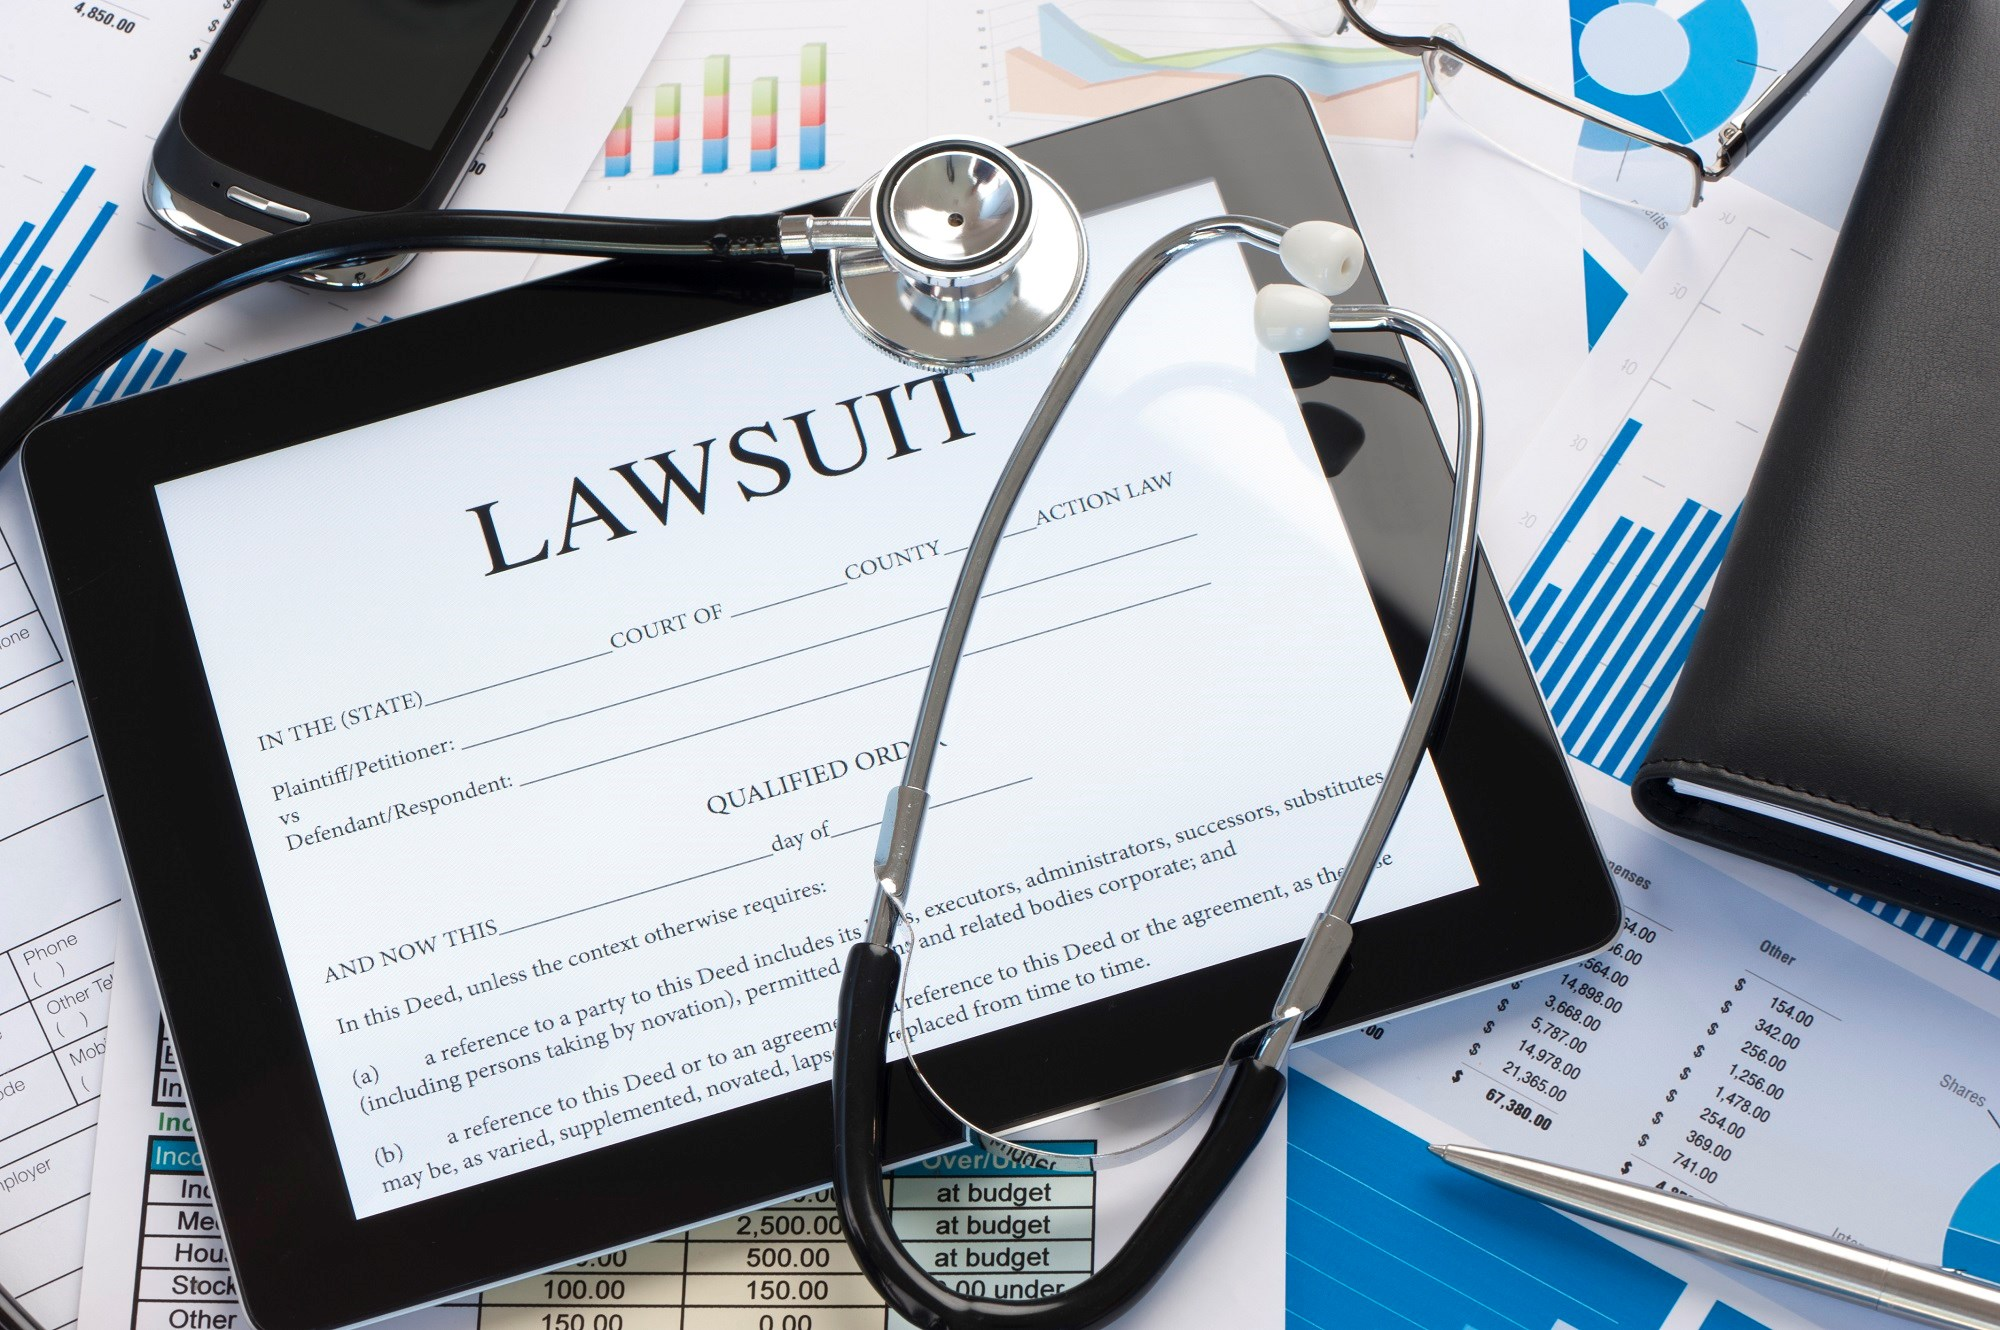 Steps Can Be Taken by Doctors to Minimize Risk of Lawsuits